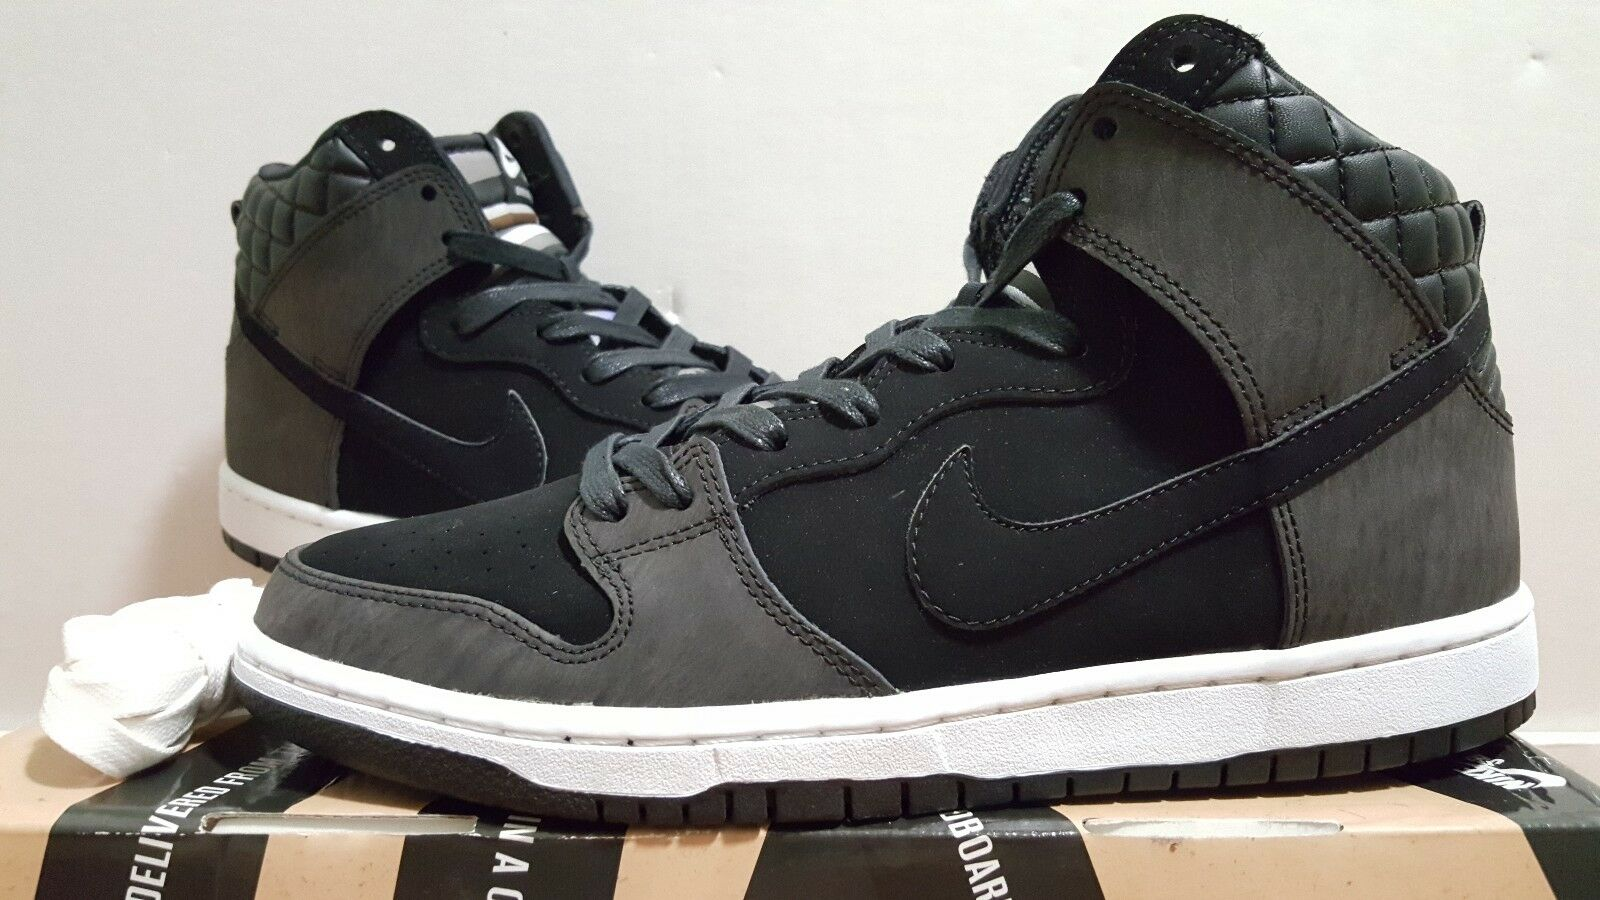 Nike SB Dunk High Premium  Civilist  Black  White (313171 016)- Sz 9.5 NEW